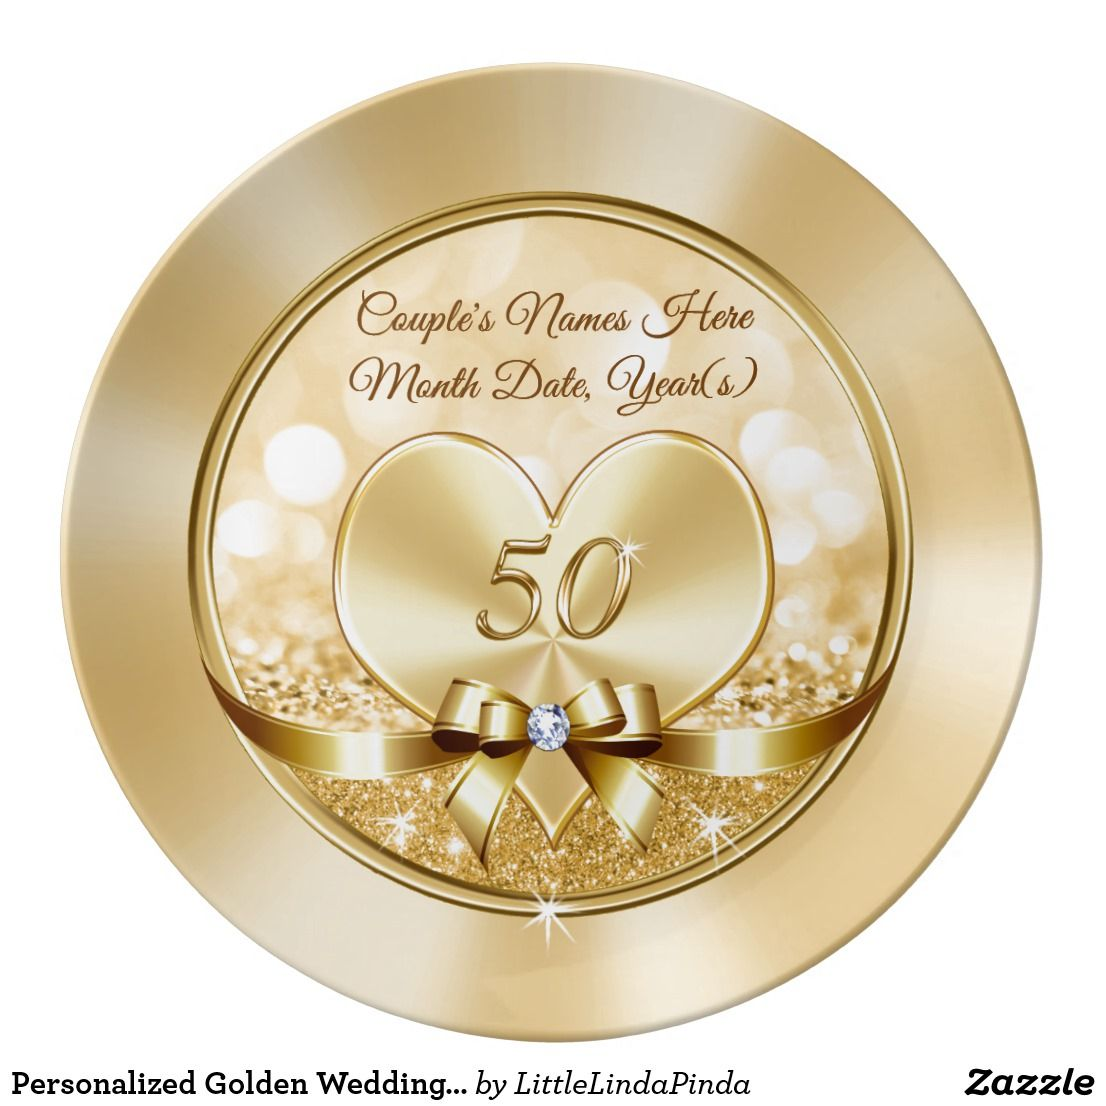 Personalized Golden Wedding Anniversary Gifts Dinner Plate Zazzle Com Golden Wedding Anniversary Gifts Wedding Anniversary Gifts 50 Wedding Anniversary Gifts